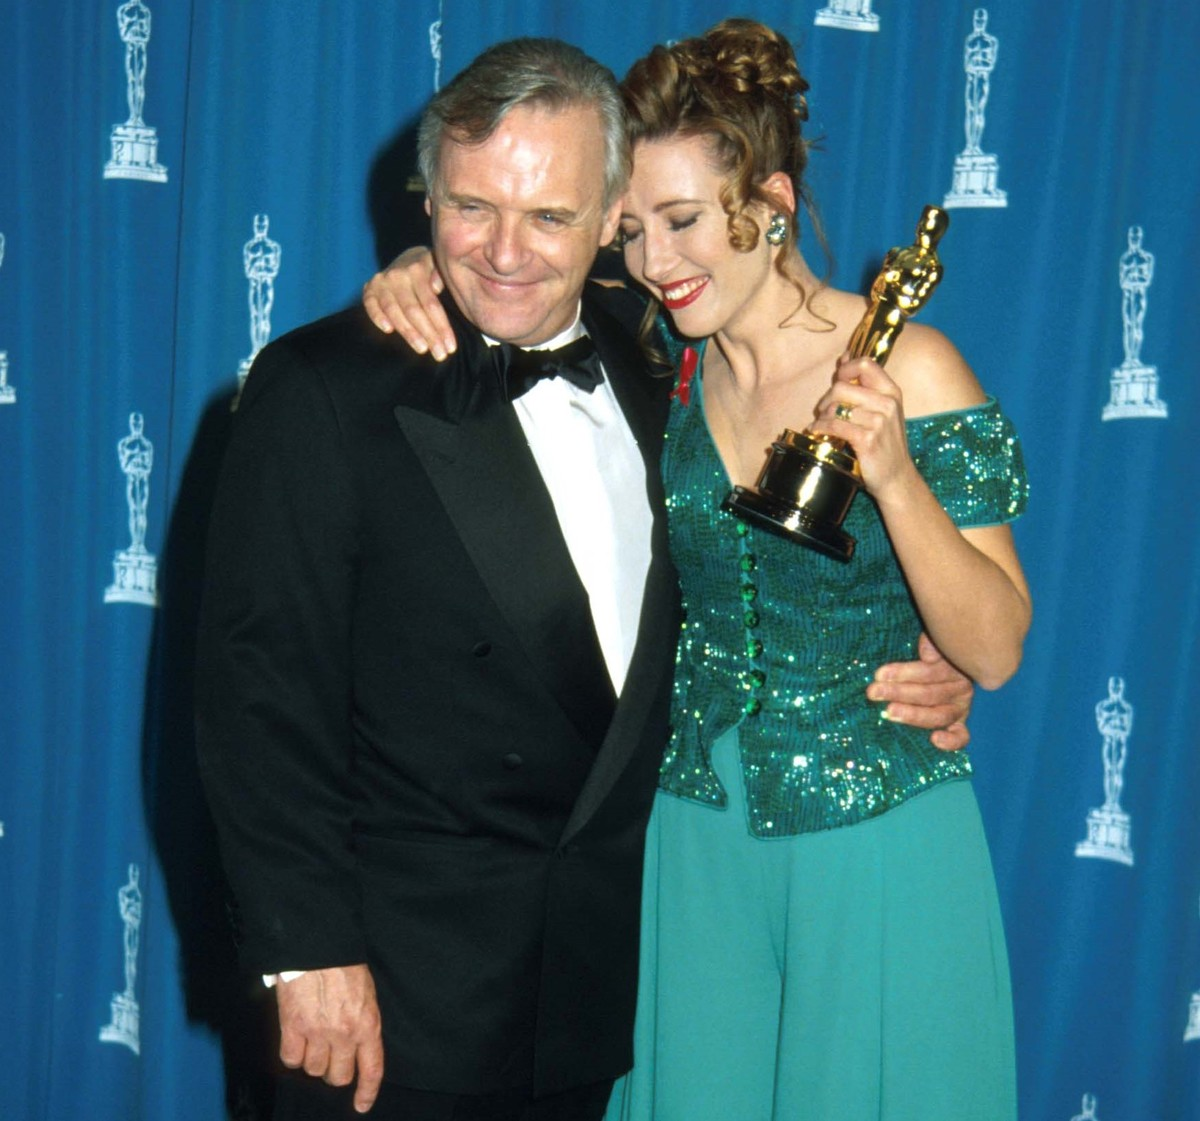 Emma Thompson and Anthony Hopkins embrace at the Academy Awards.